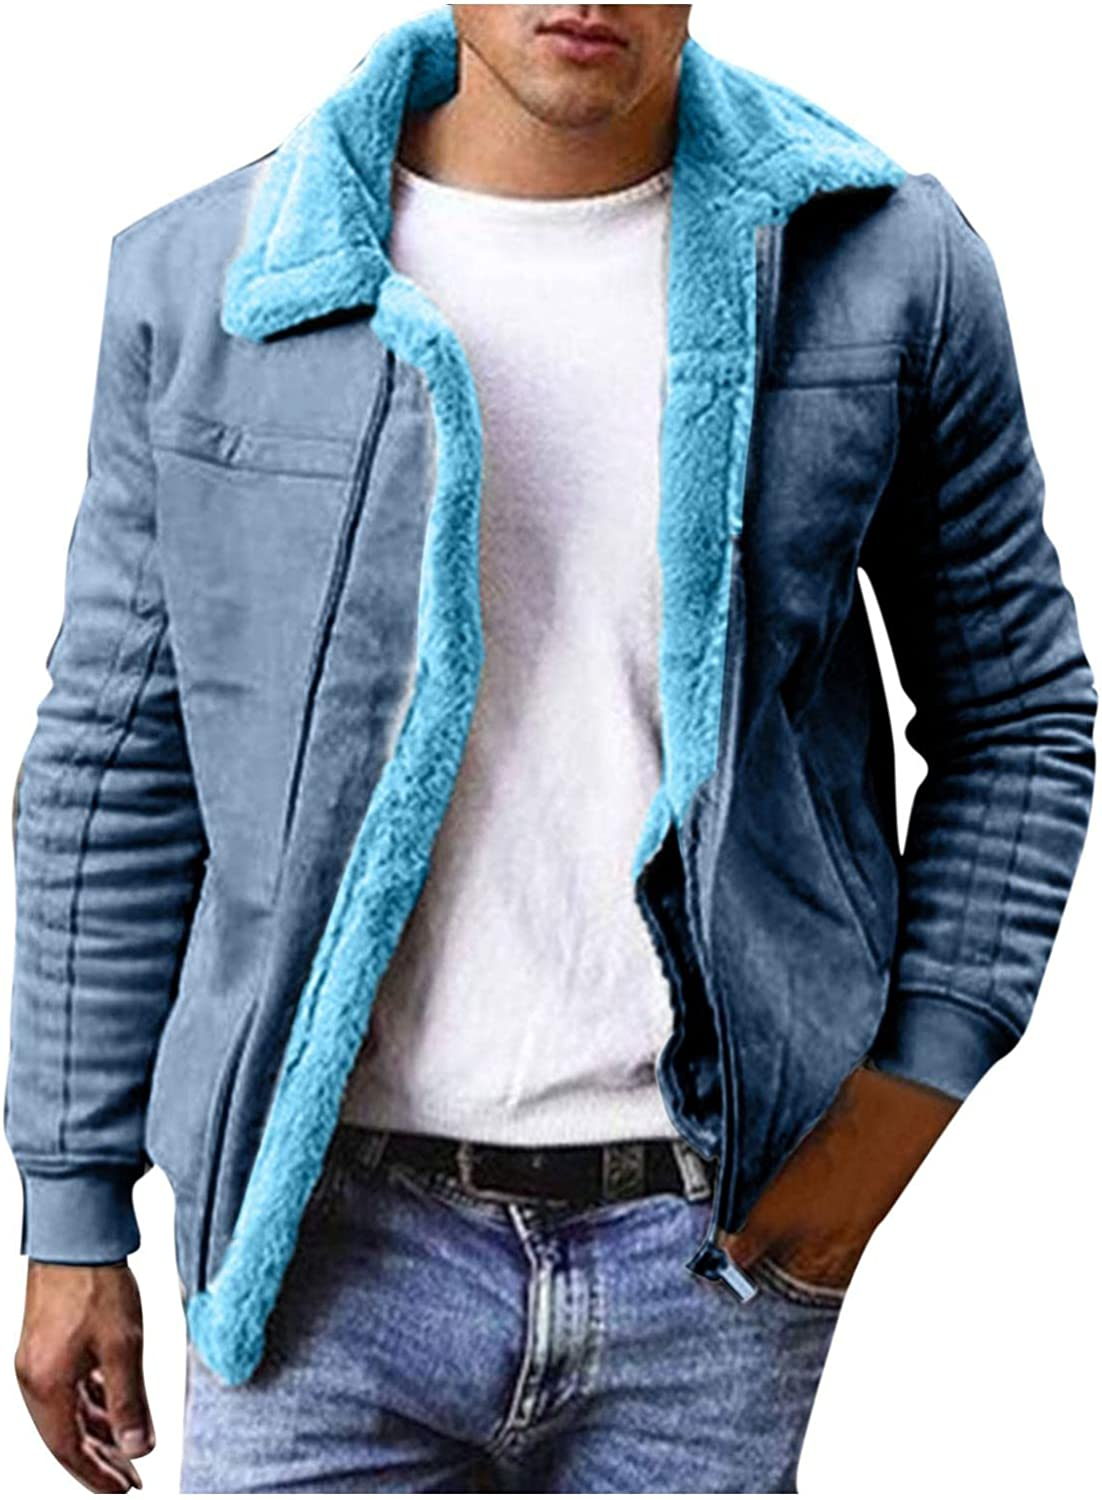 Men's Autumn Winter Sherpa Lined Jackets Zipper Casual Cardigan New Dealing full price reduction item